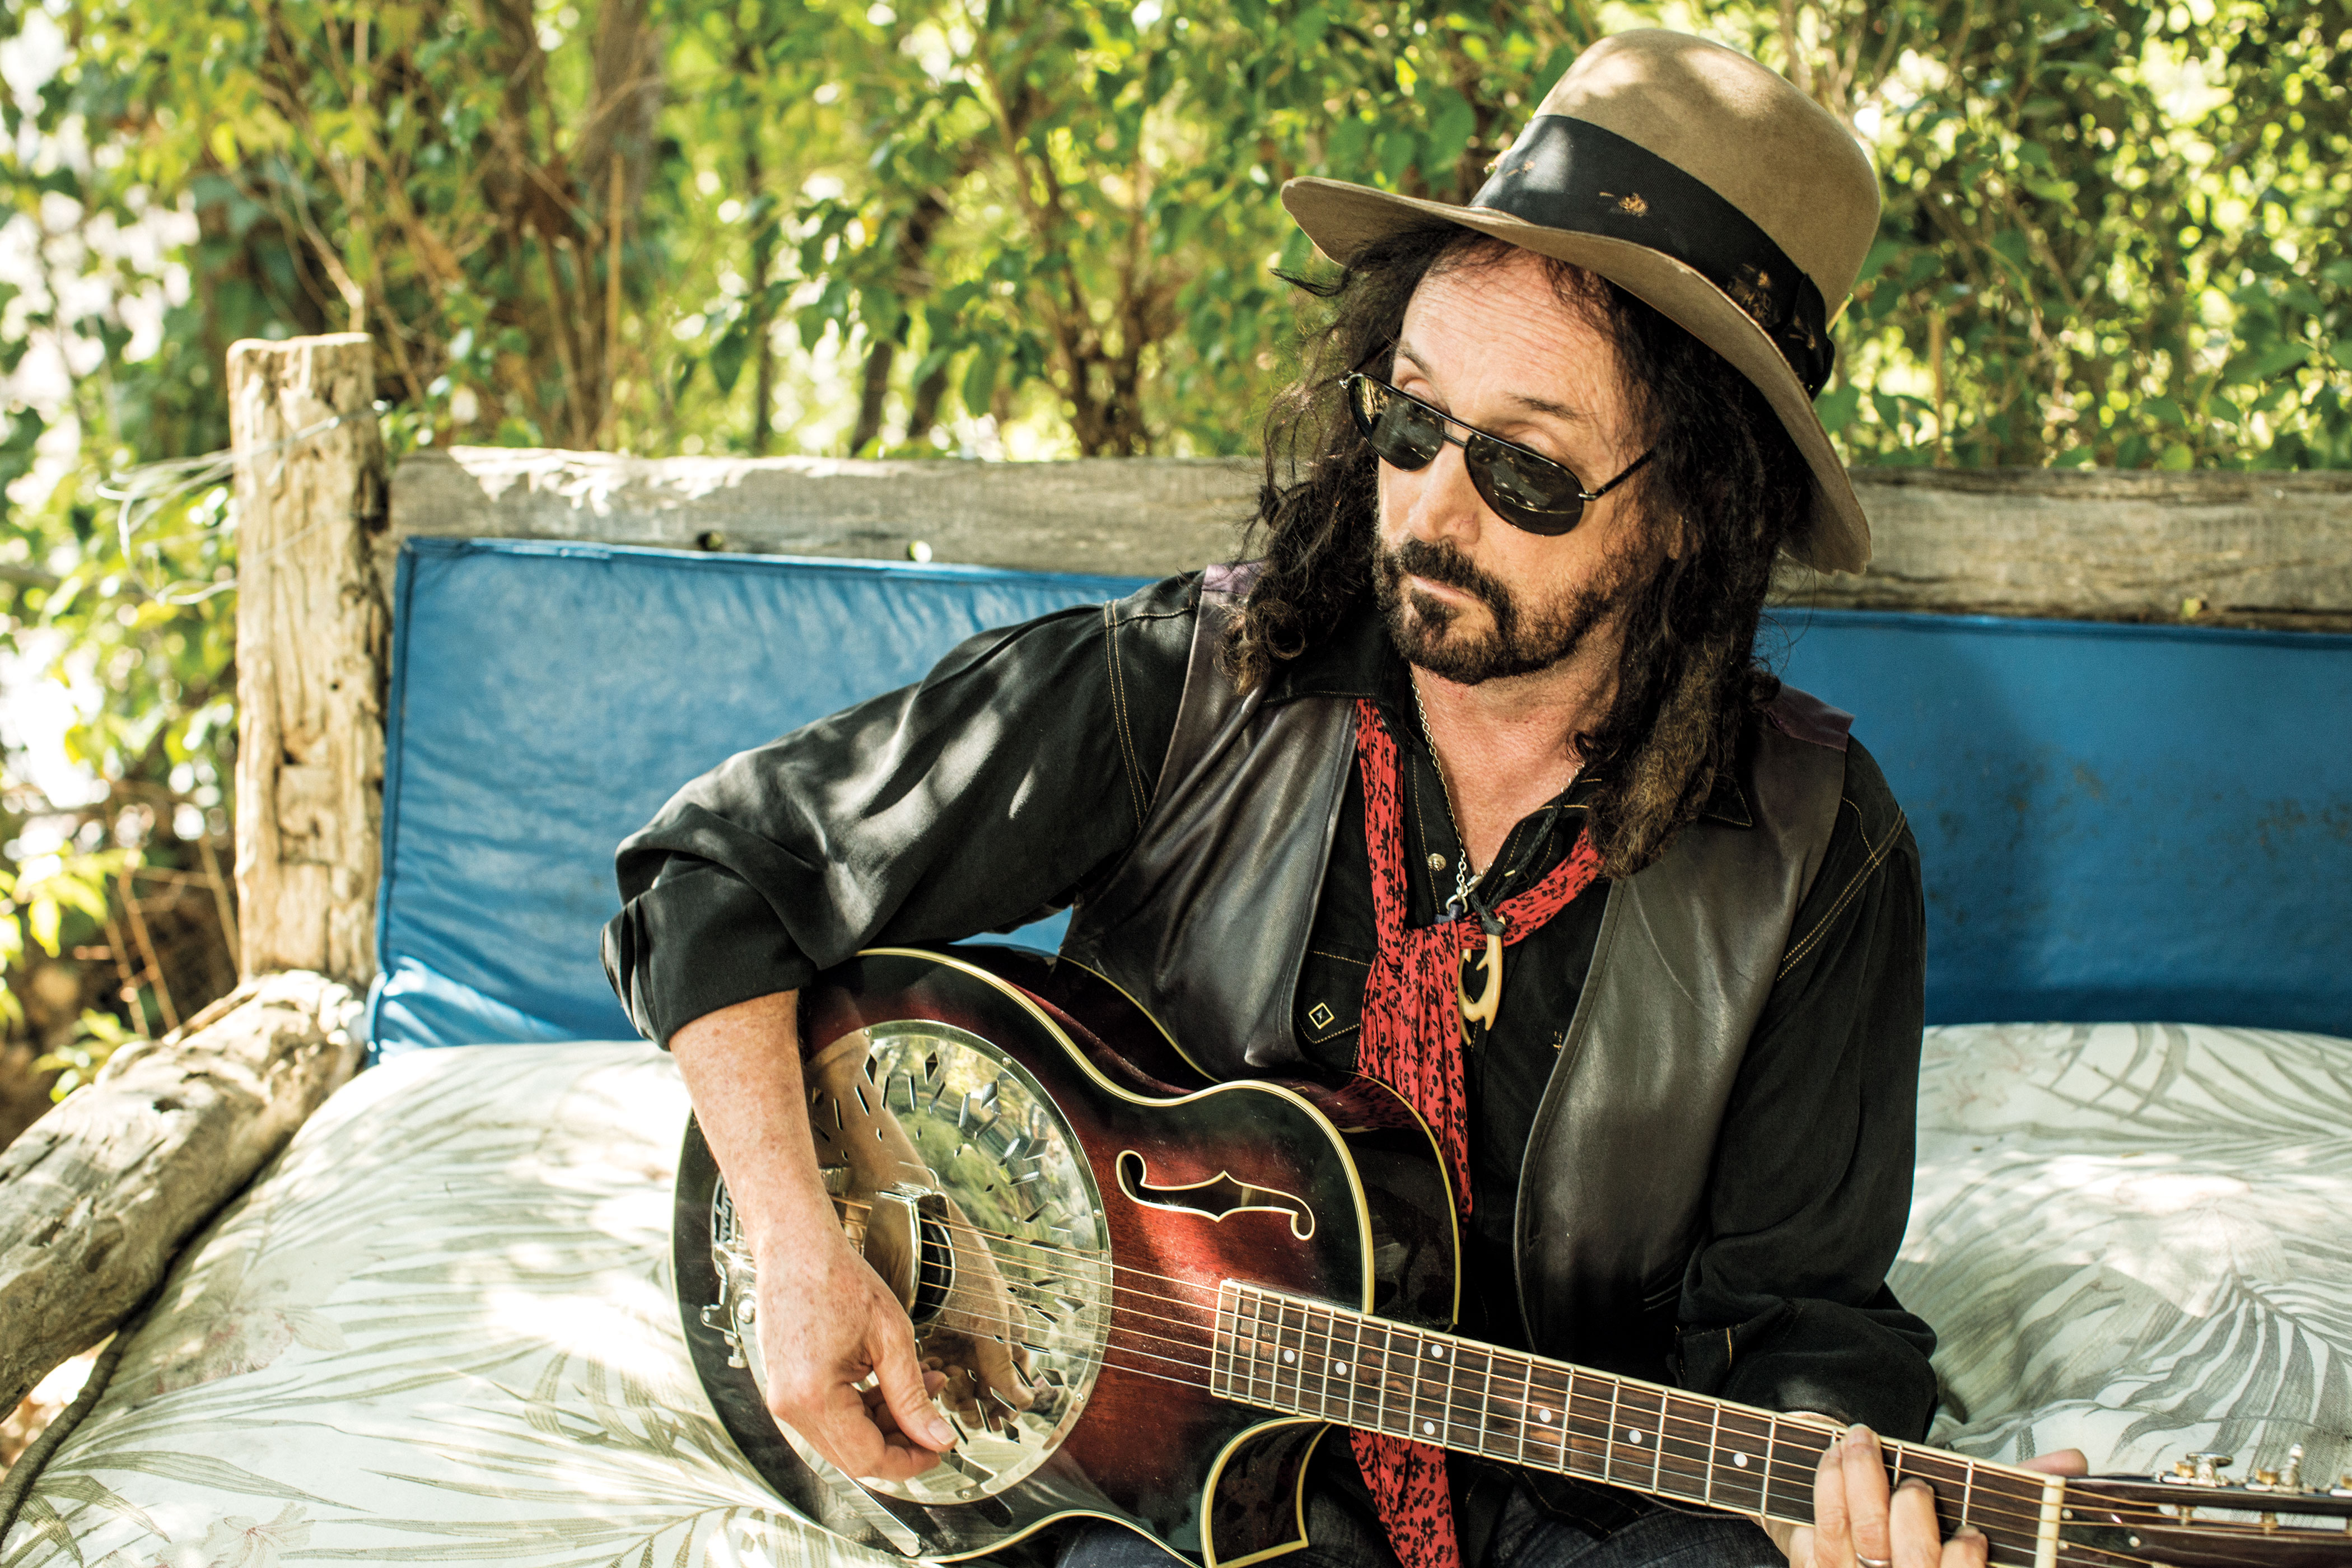 After Tom Petty, Mike Campbell's New Band Is Fleetwood Mac